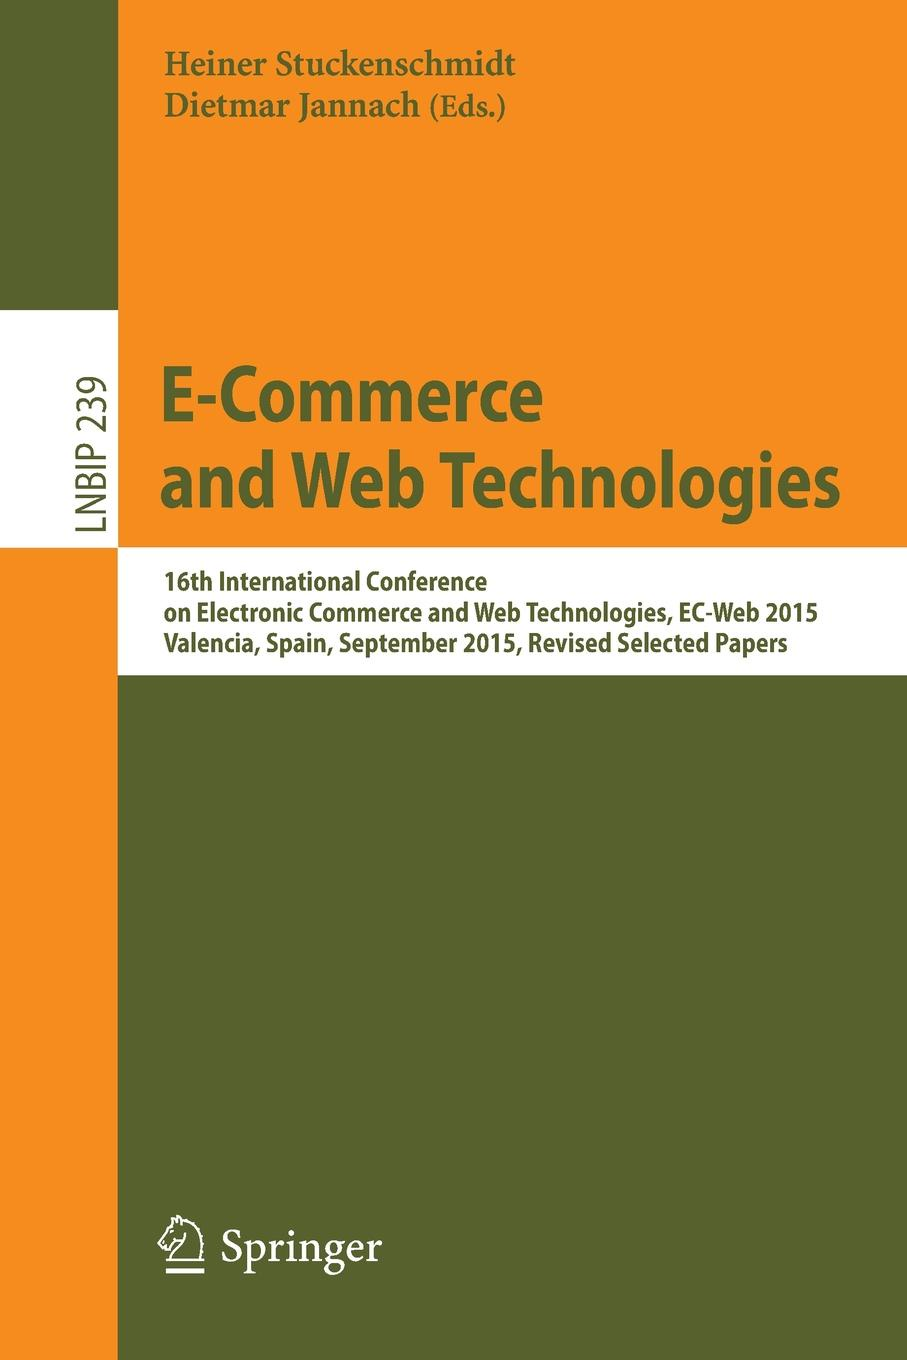 E-Commerce and Web Technologies. 16th International Conference on Electronic Commerce and Web Technologies, EC-Web 2015, Valencia, Spain, September 2015, Revised Selected Papers web